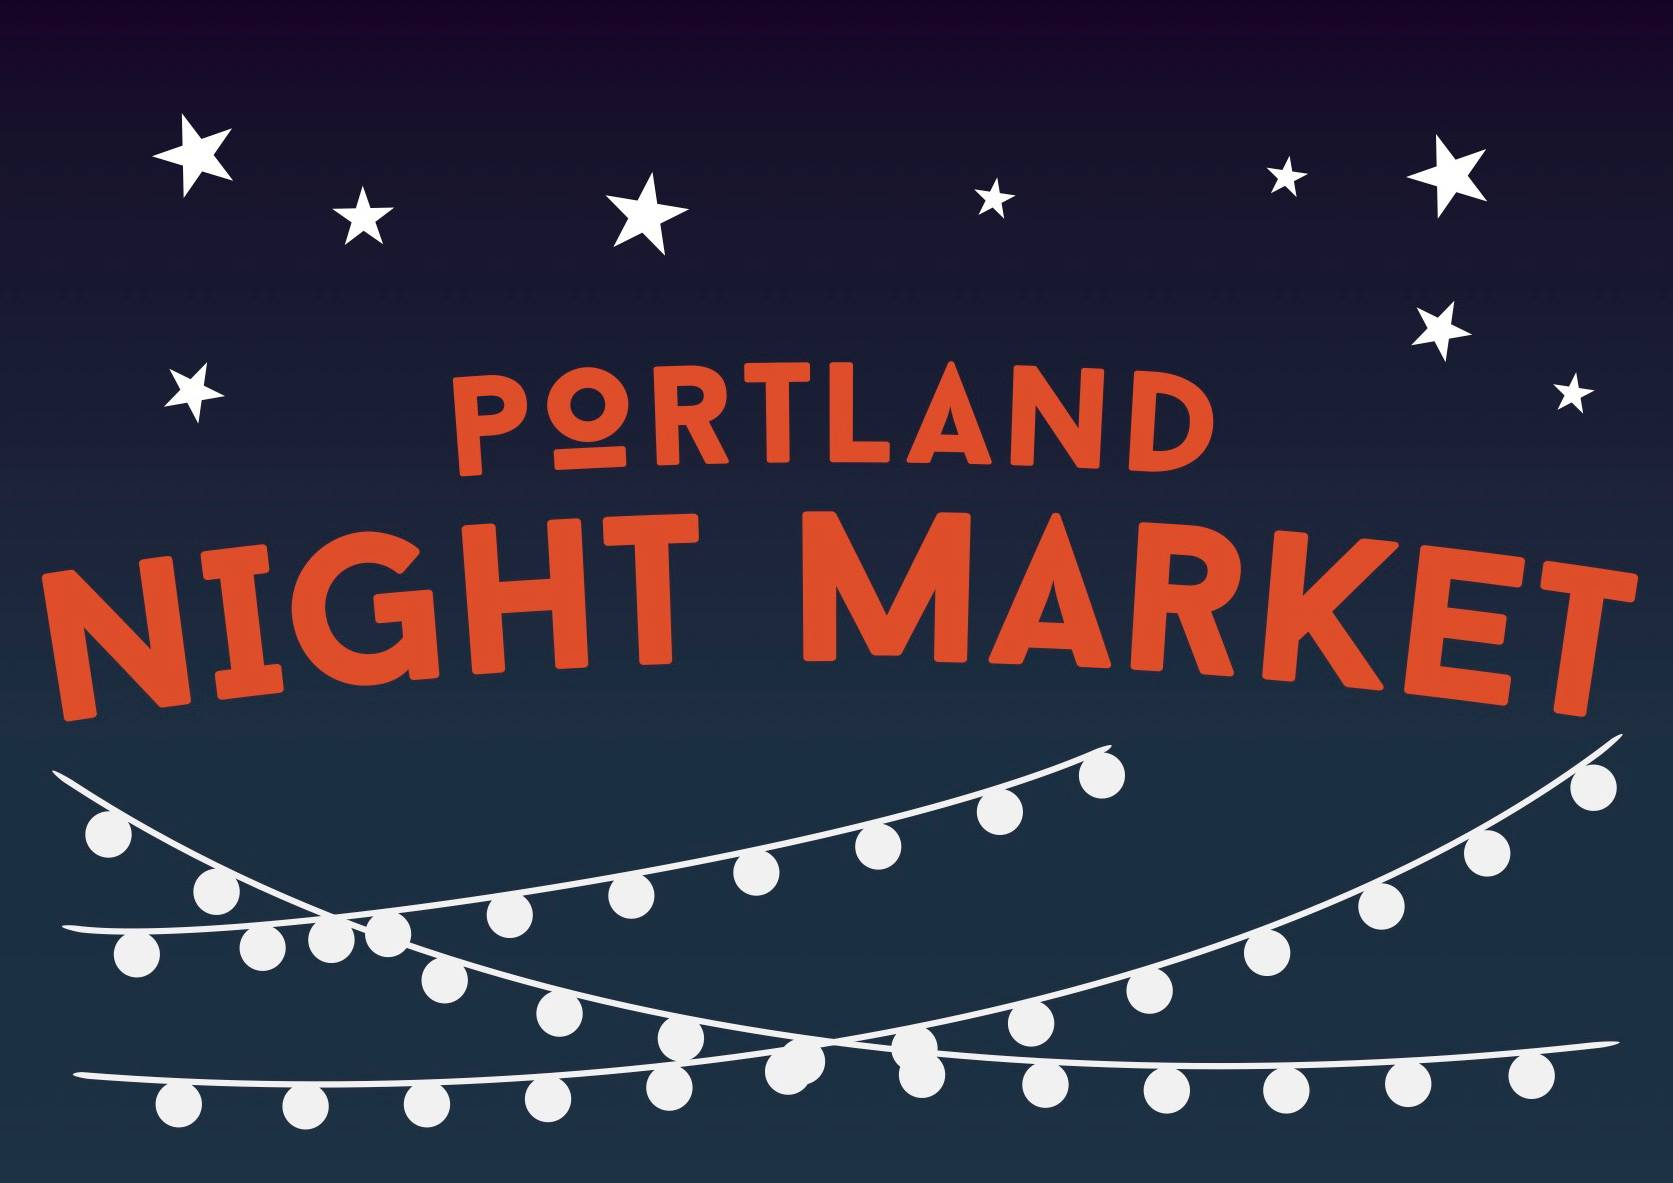 December 14-16 - Custom Blocks900 SE Main St. Portland, ORFriday and Saturday 4pm -11pmSunday 11am - 4pm